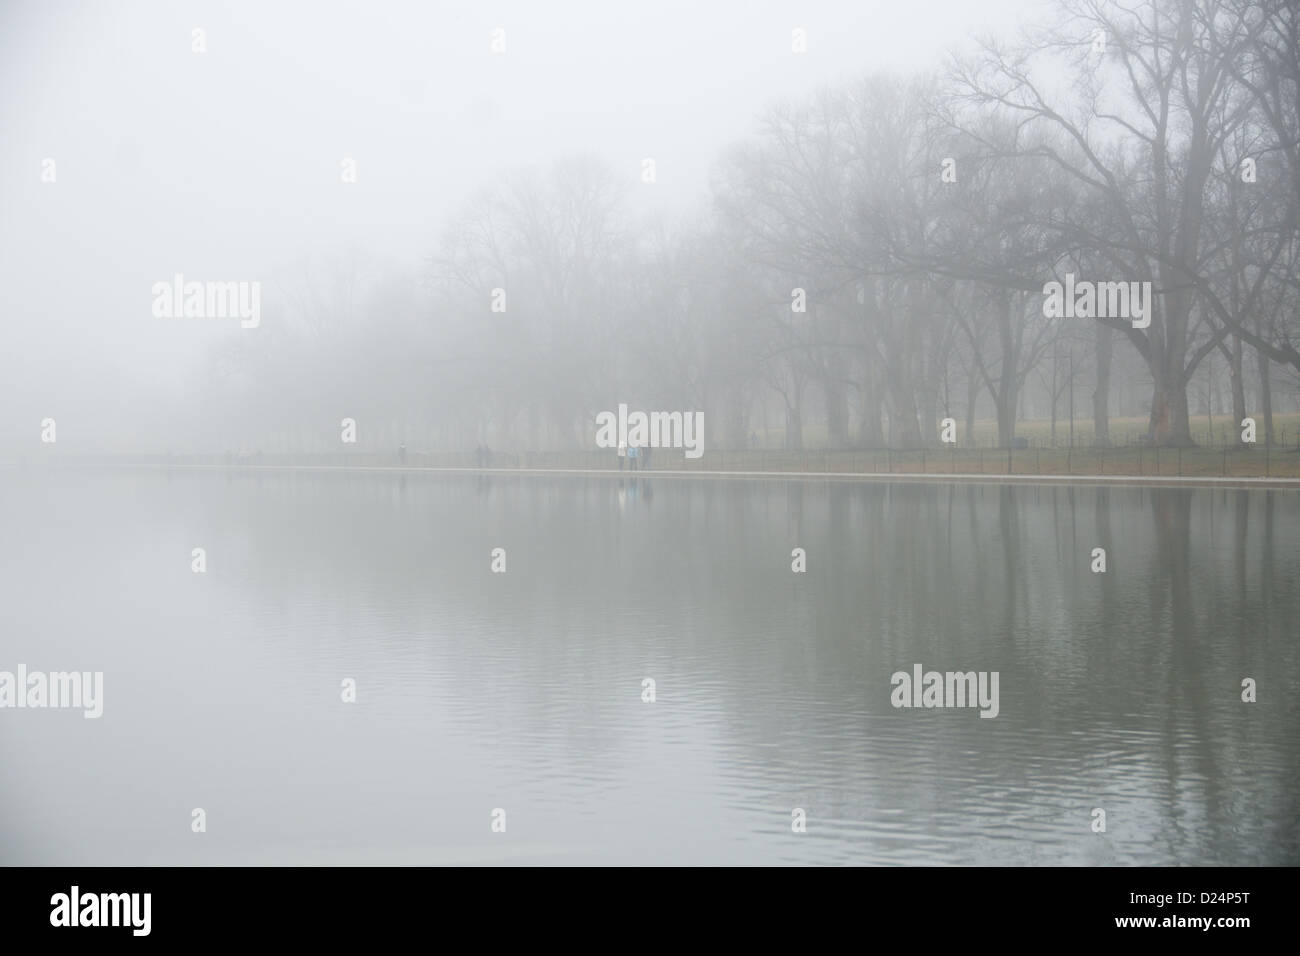 The Lincoln Memorial Reflecting Pool on a misty, cold winter's day in Washington DC. - Stock Image